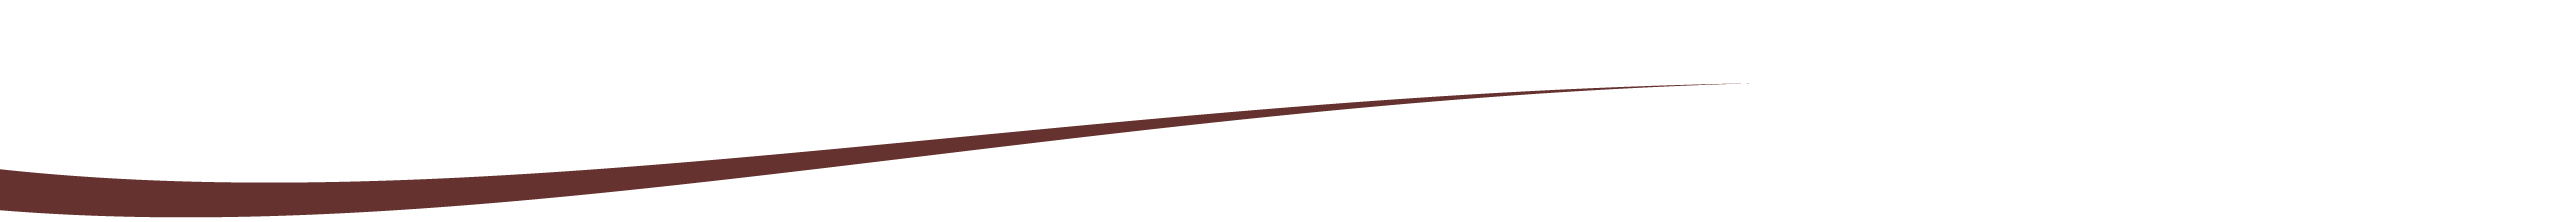 banner curve